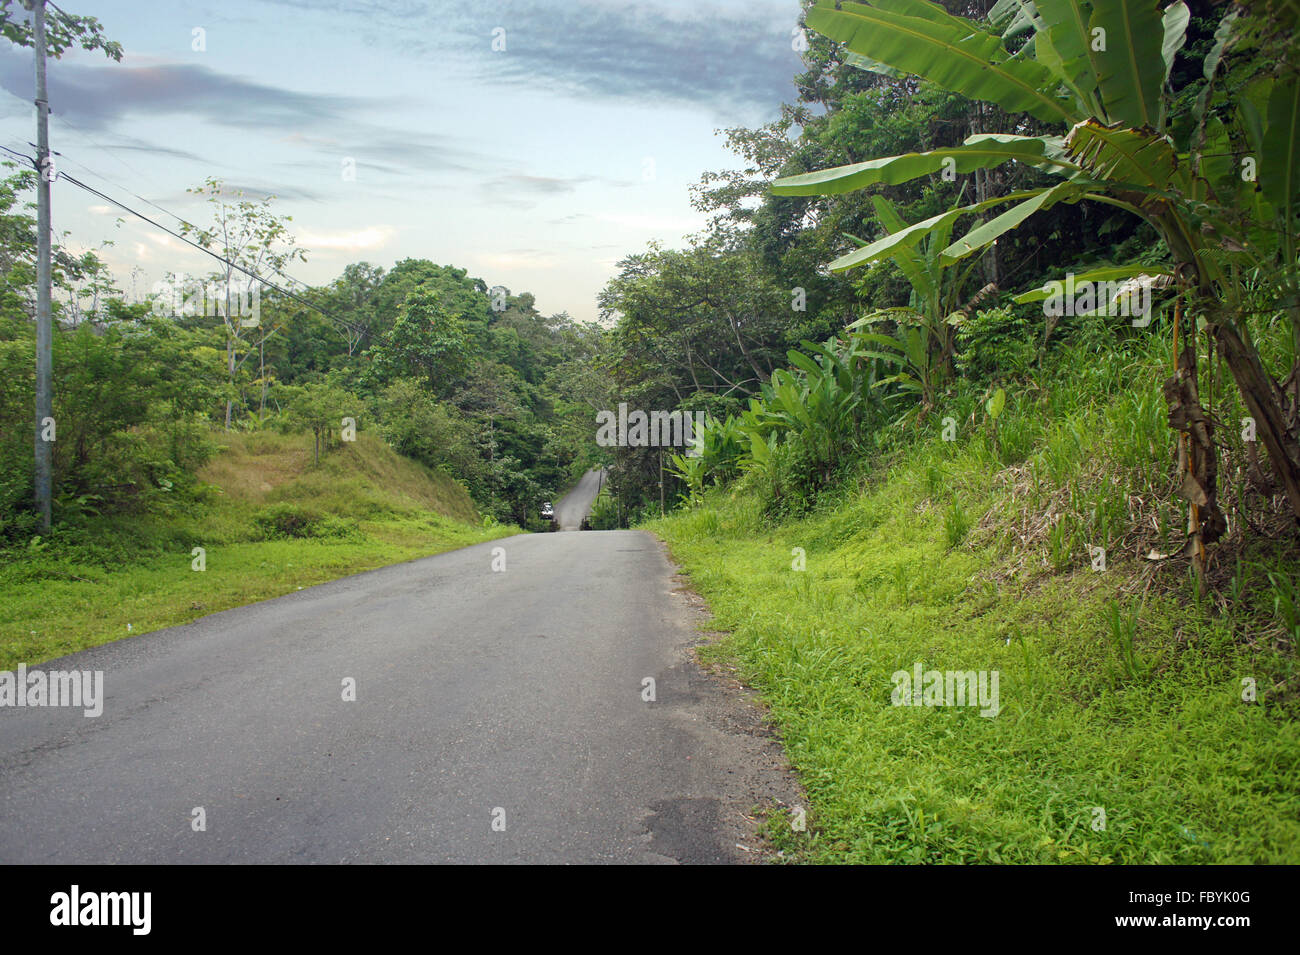 road to nowhere - Stock Image